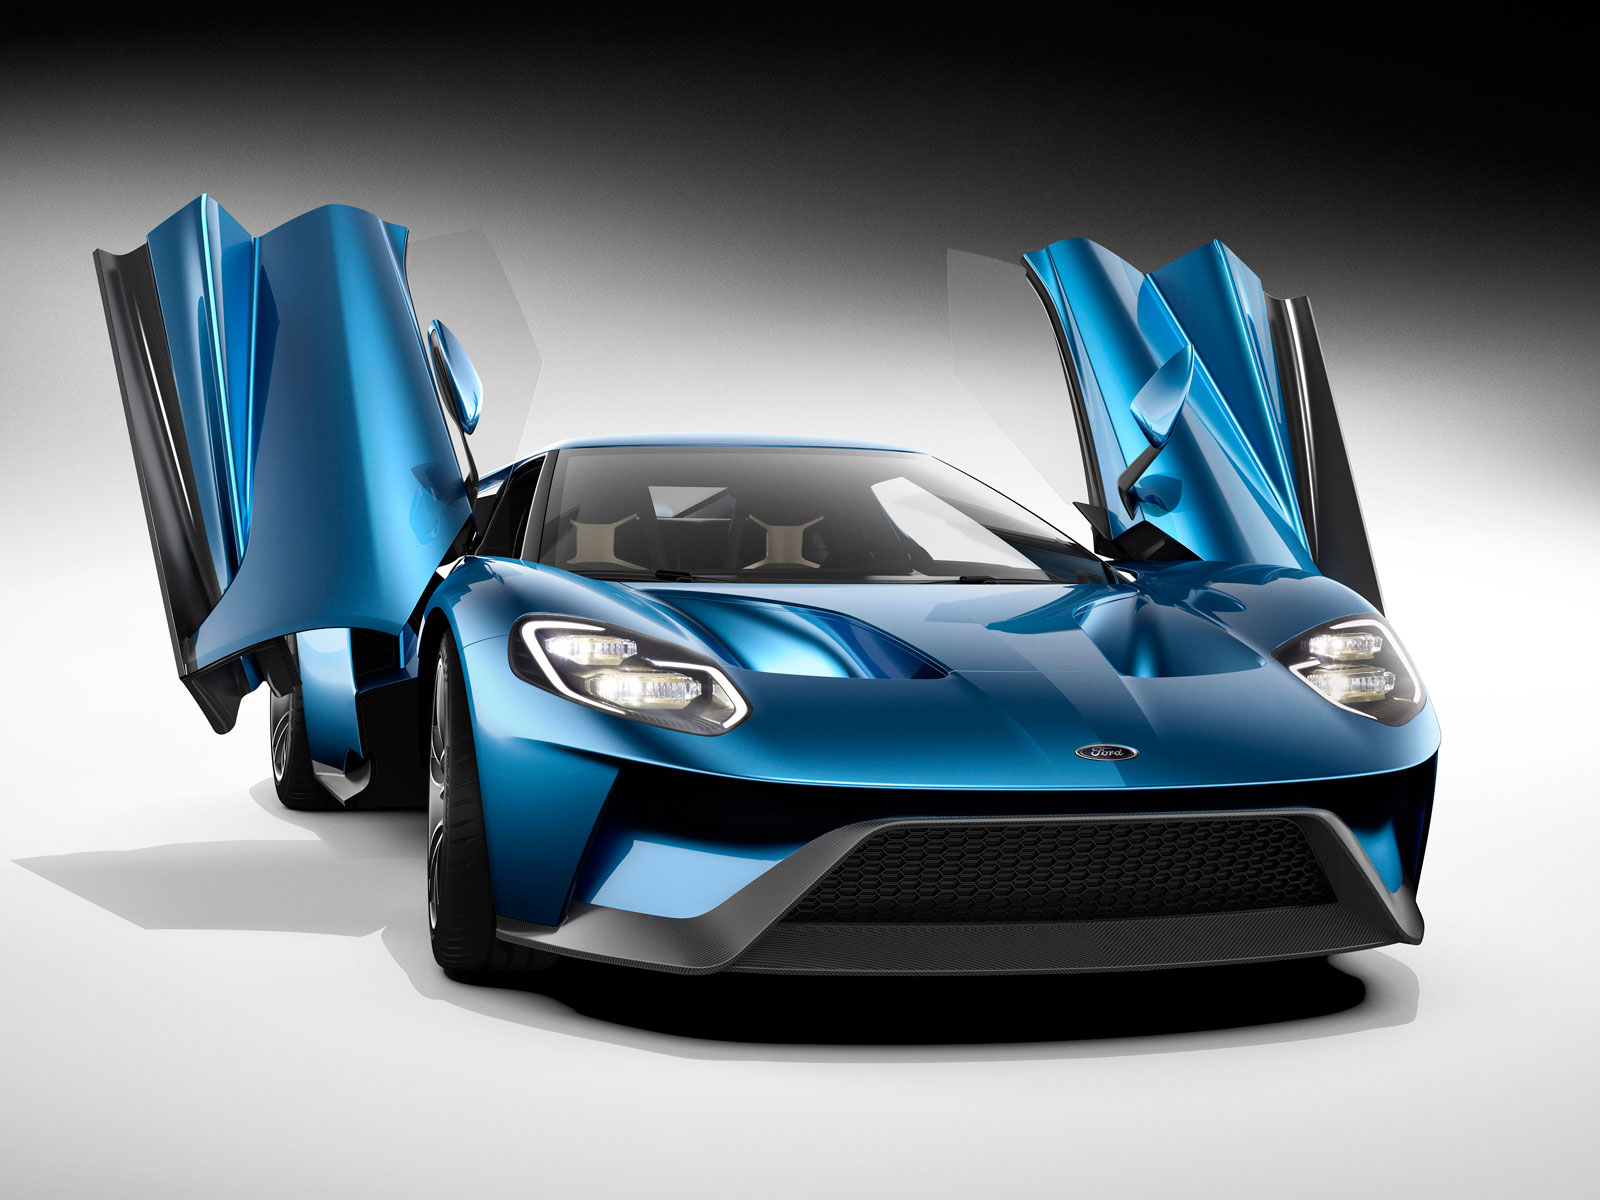 2016 Ford GT (c) Ford